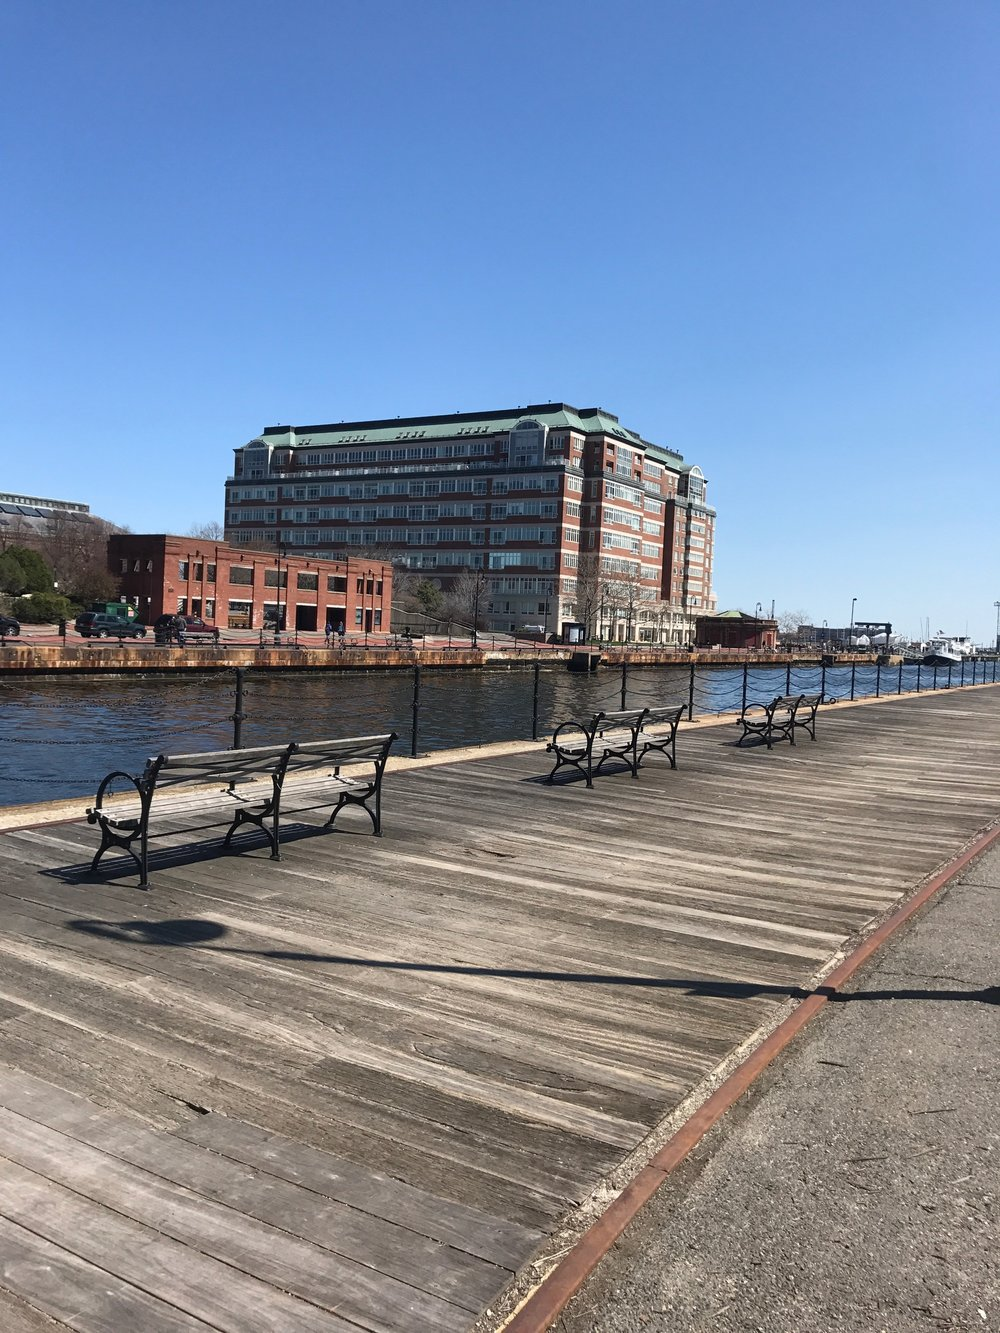 Charlestown Navy Yard docks